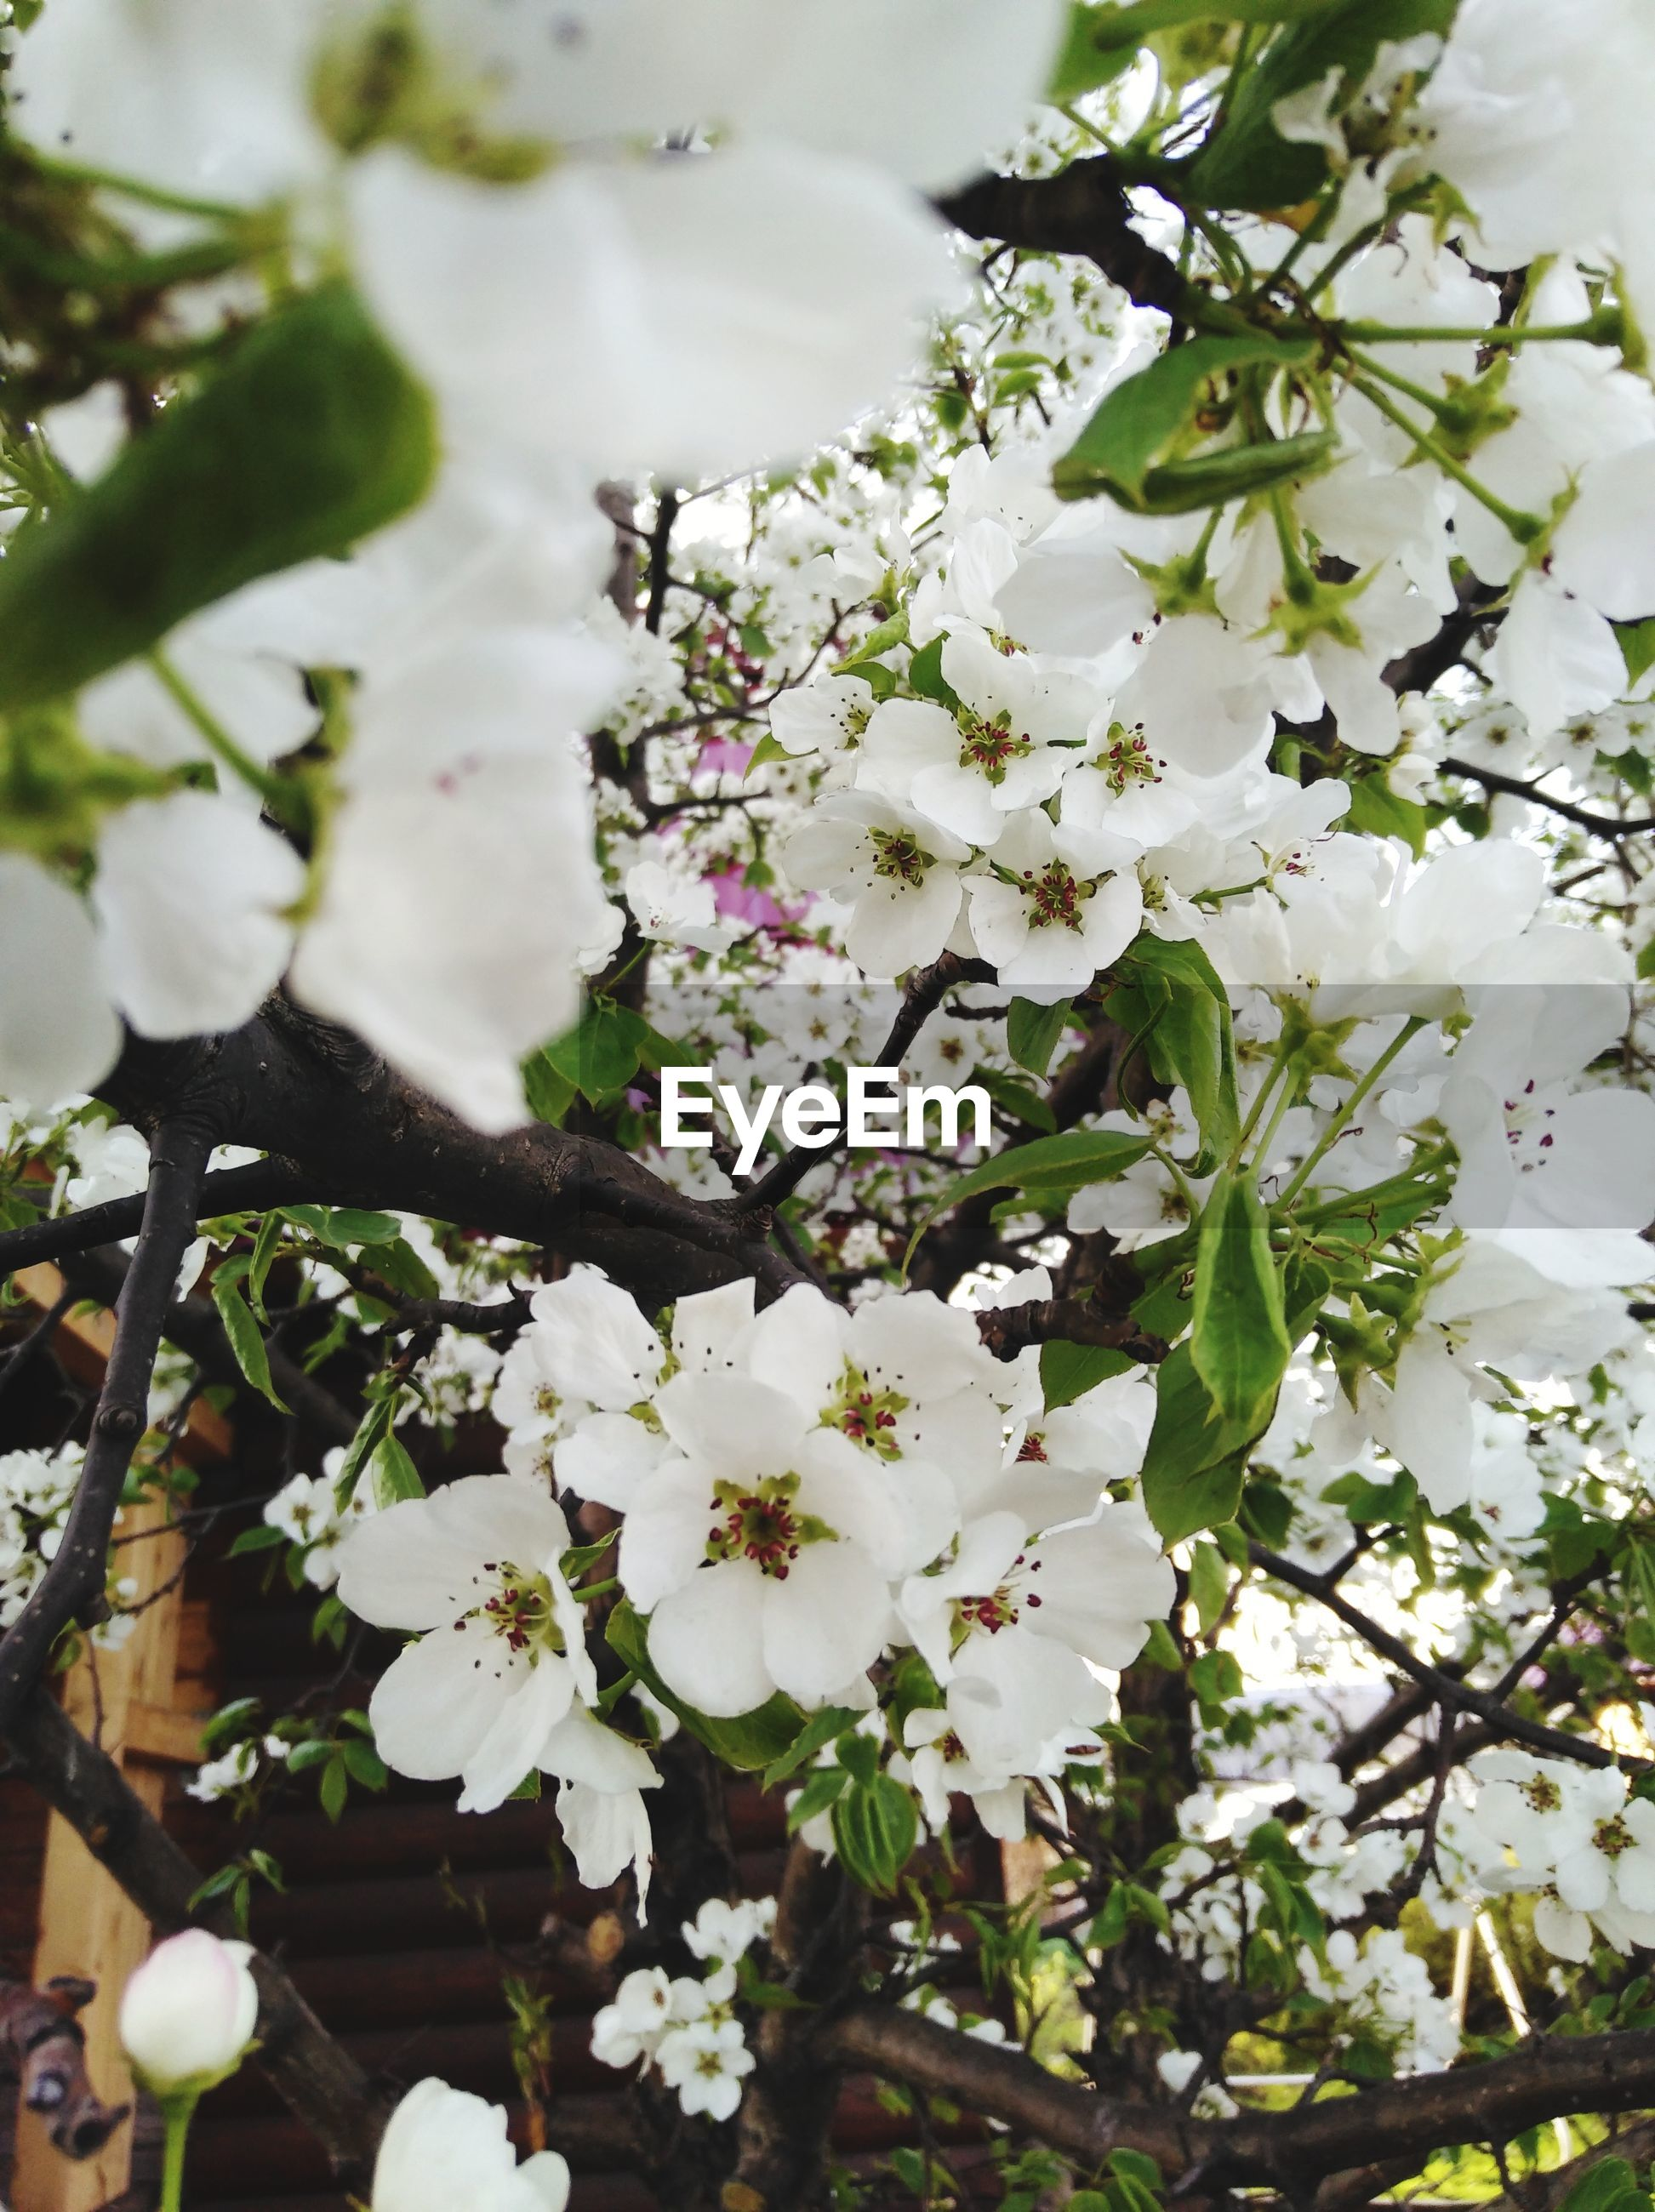 flower, white color, fragility, beauty in nature, freshness, blossom, branch, nature, apple blossom, apple tree, growth, tree, springtime, botany, twig, no people, close-up, day, petal, outdoors, scented, flower head